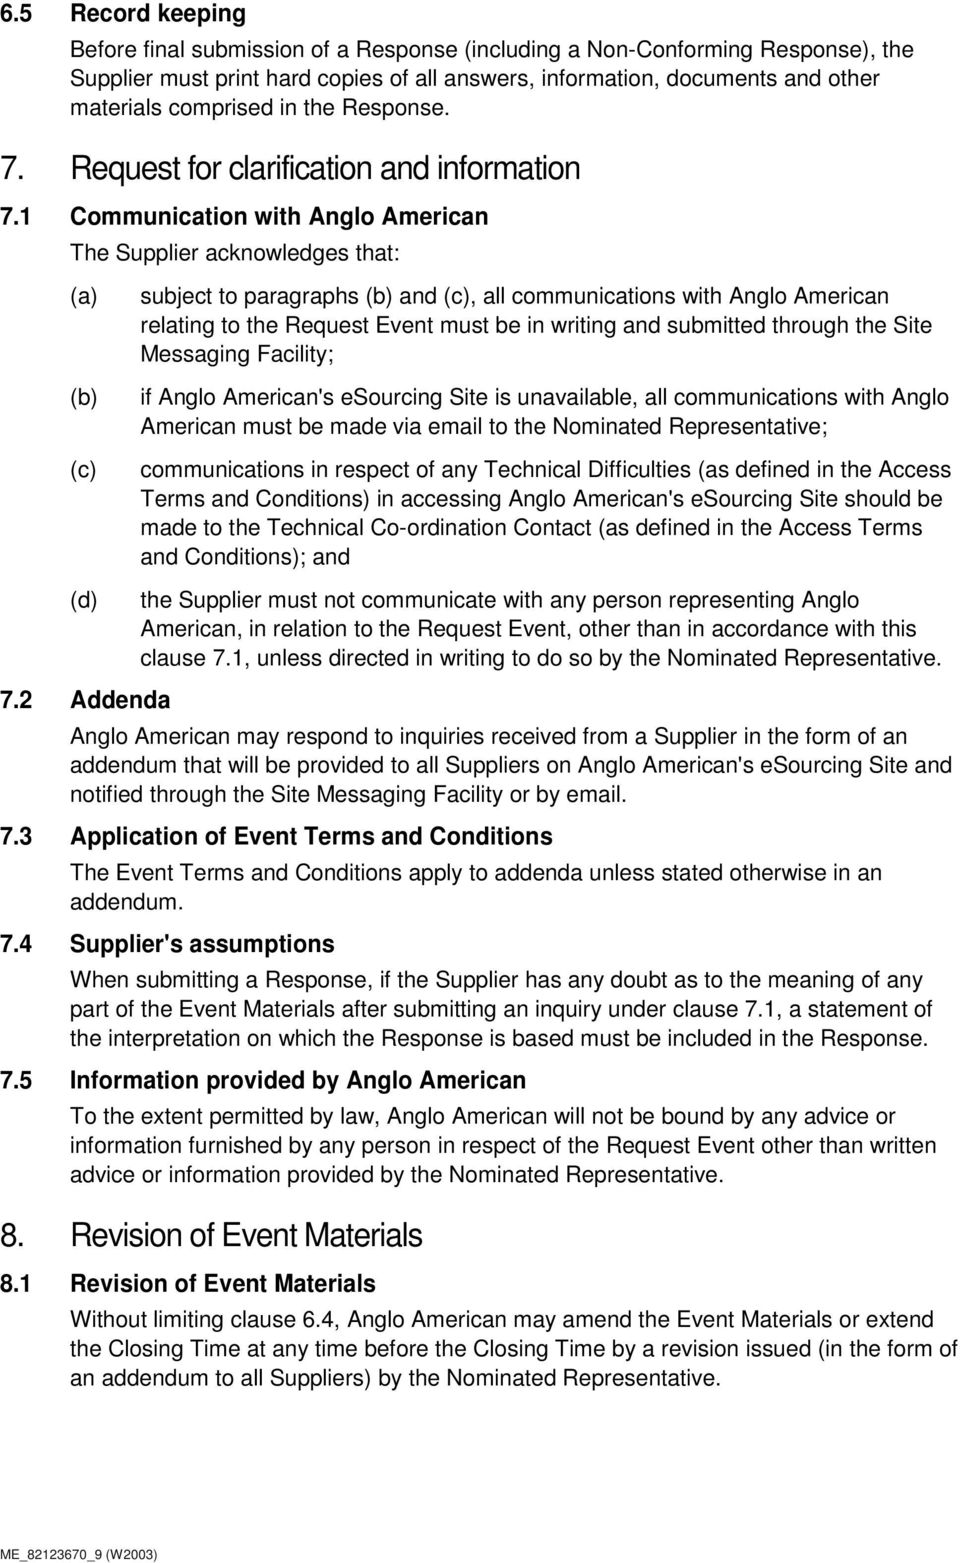 1 Communication with Anglo American The Supplier acknowledges that: subject to paragraphs and, all communications with Anglo American relating to the Request Event must be in writing and submitted